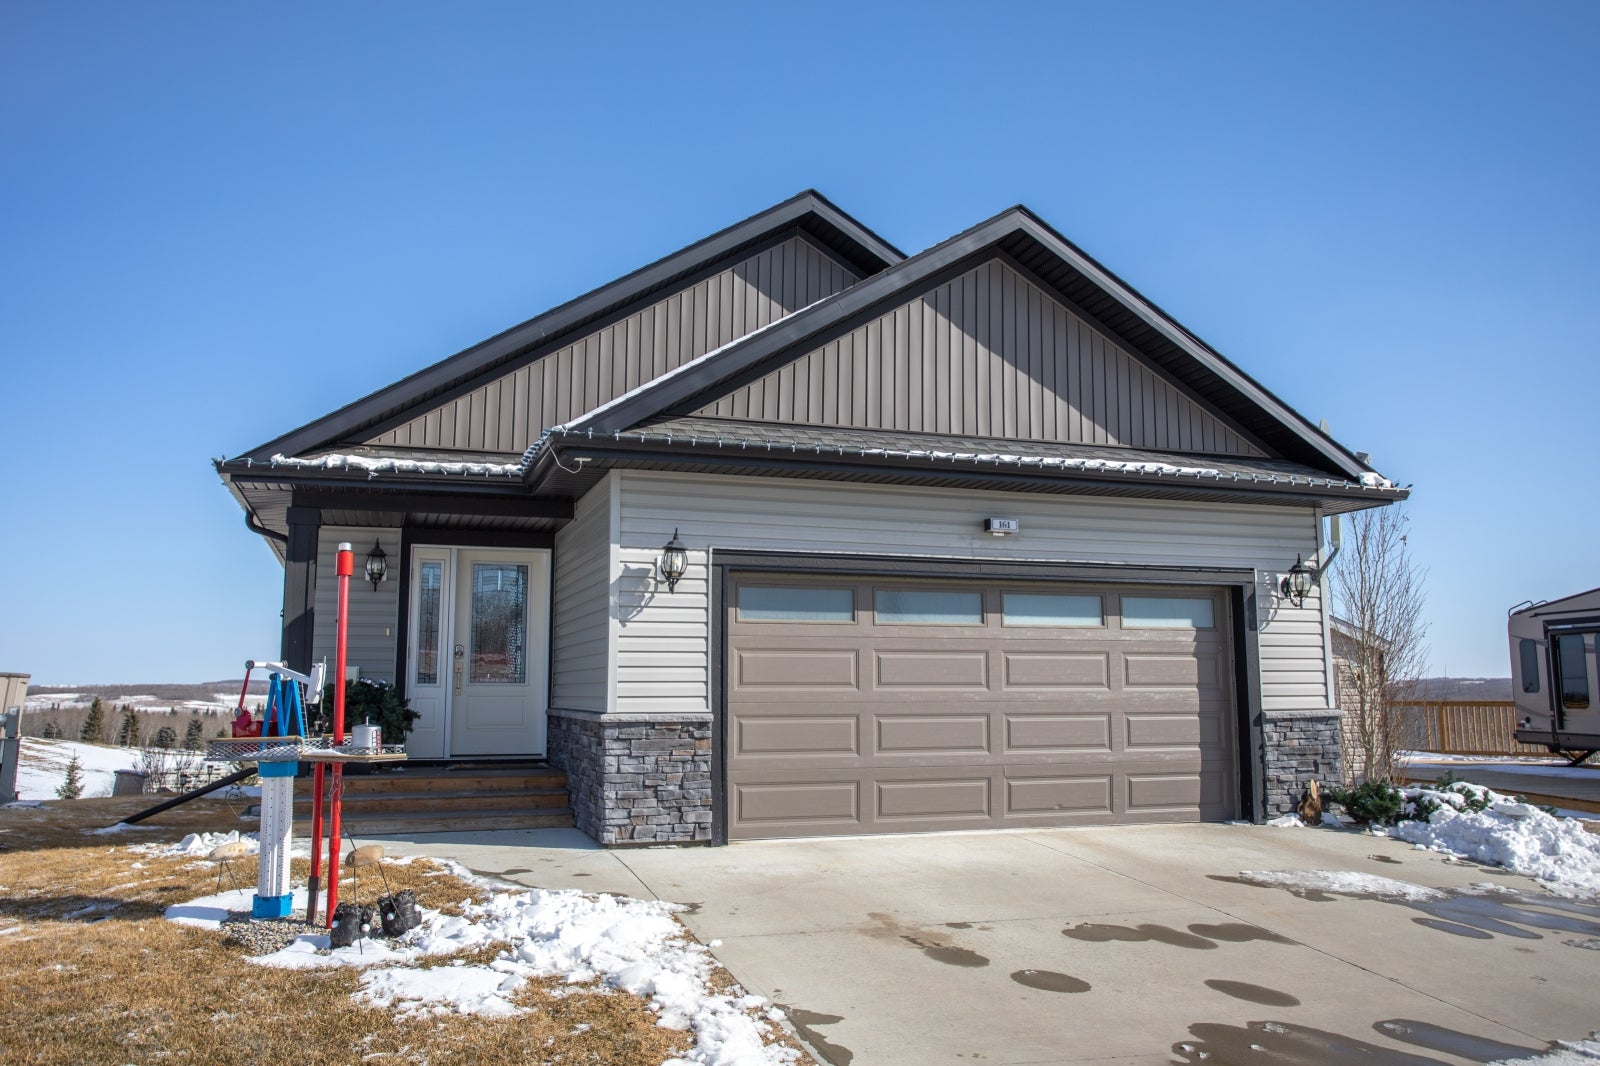 6161 25054 South Pine Lake Road, Red Deer County, AB  - Whispering Pines Condominium for sale(A1087397) #1